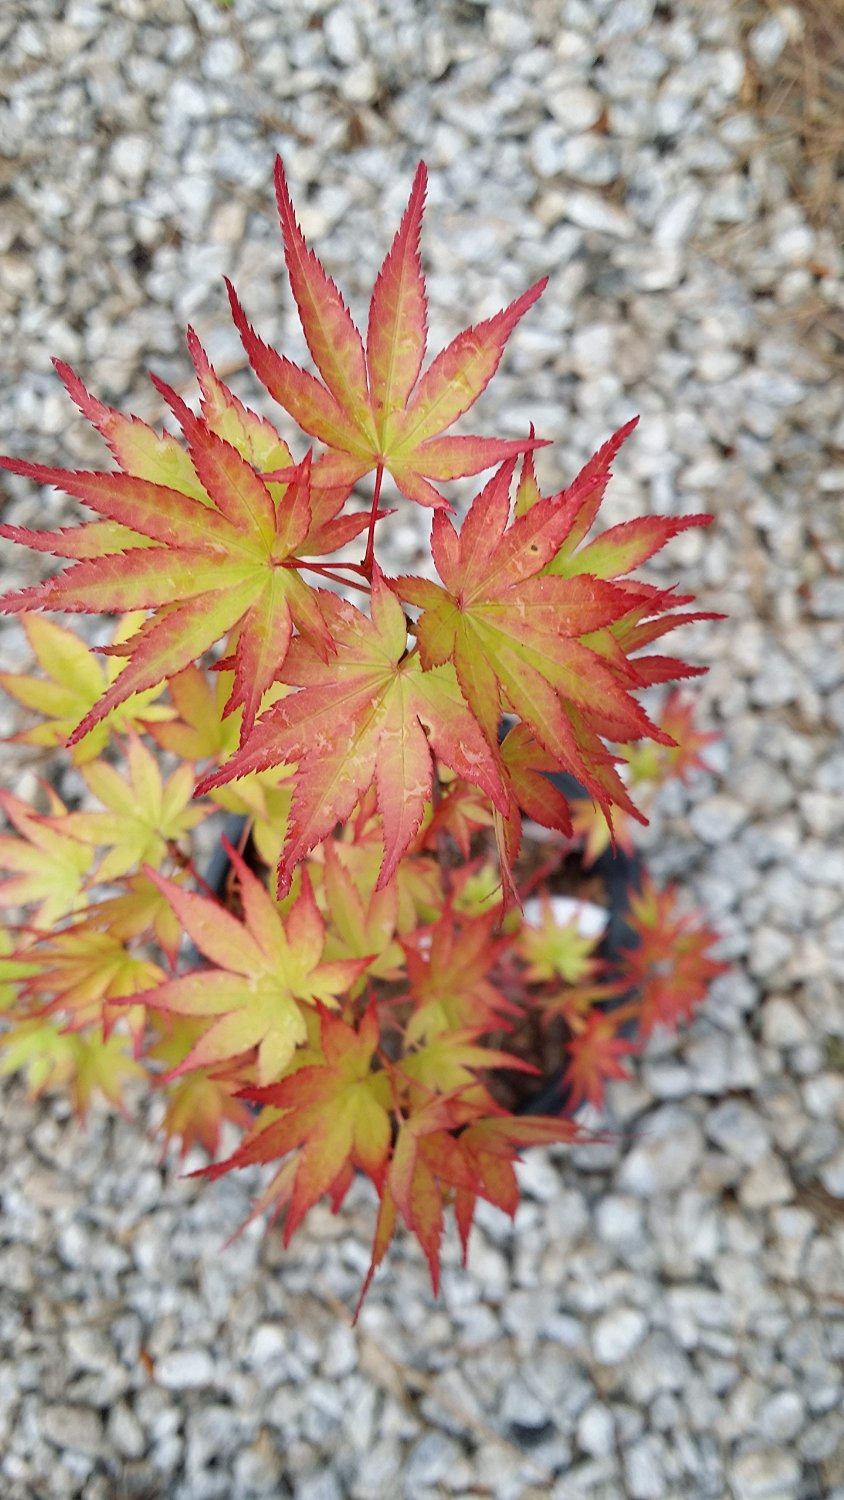 (1 Gallon) COONARA PYGMY Japanese Maple- DWARF compact small tree, Small bright green foliage. Fall colors pastel orange pink stages